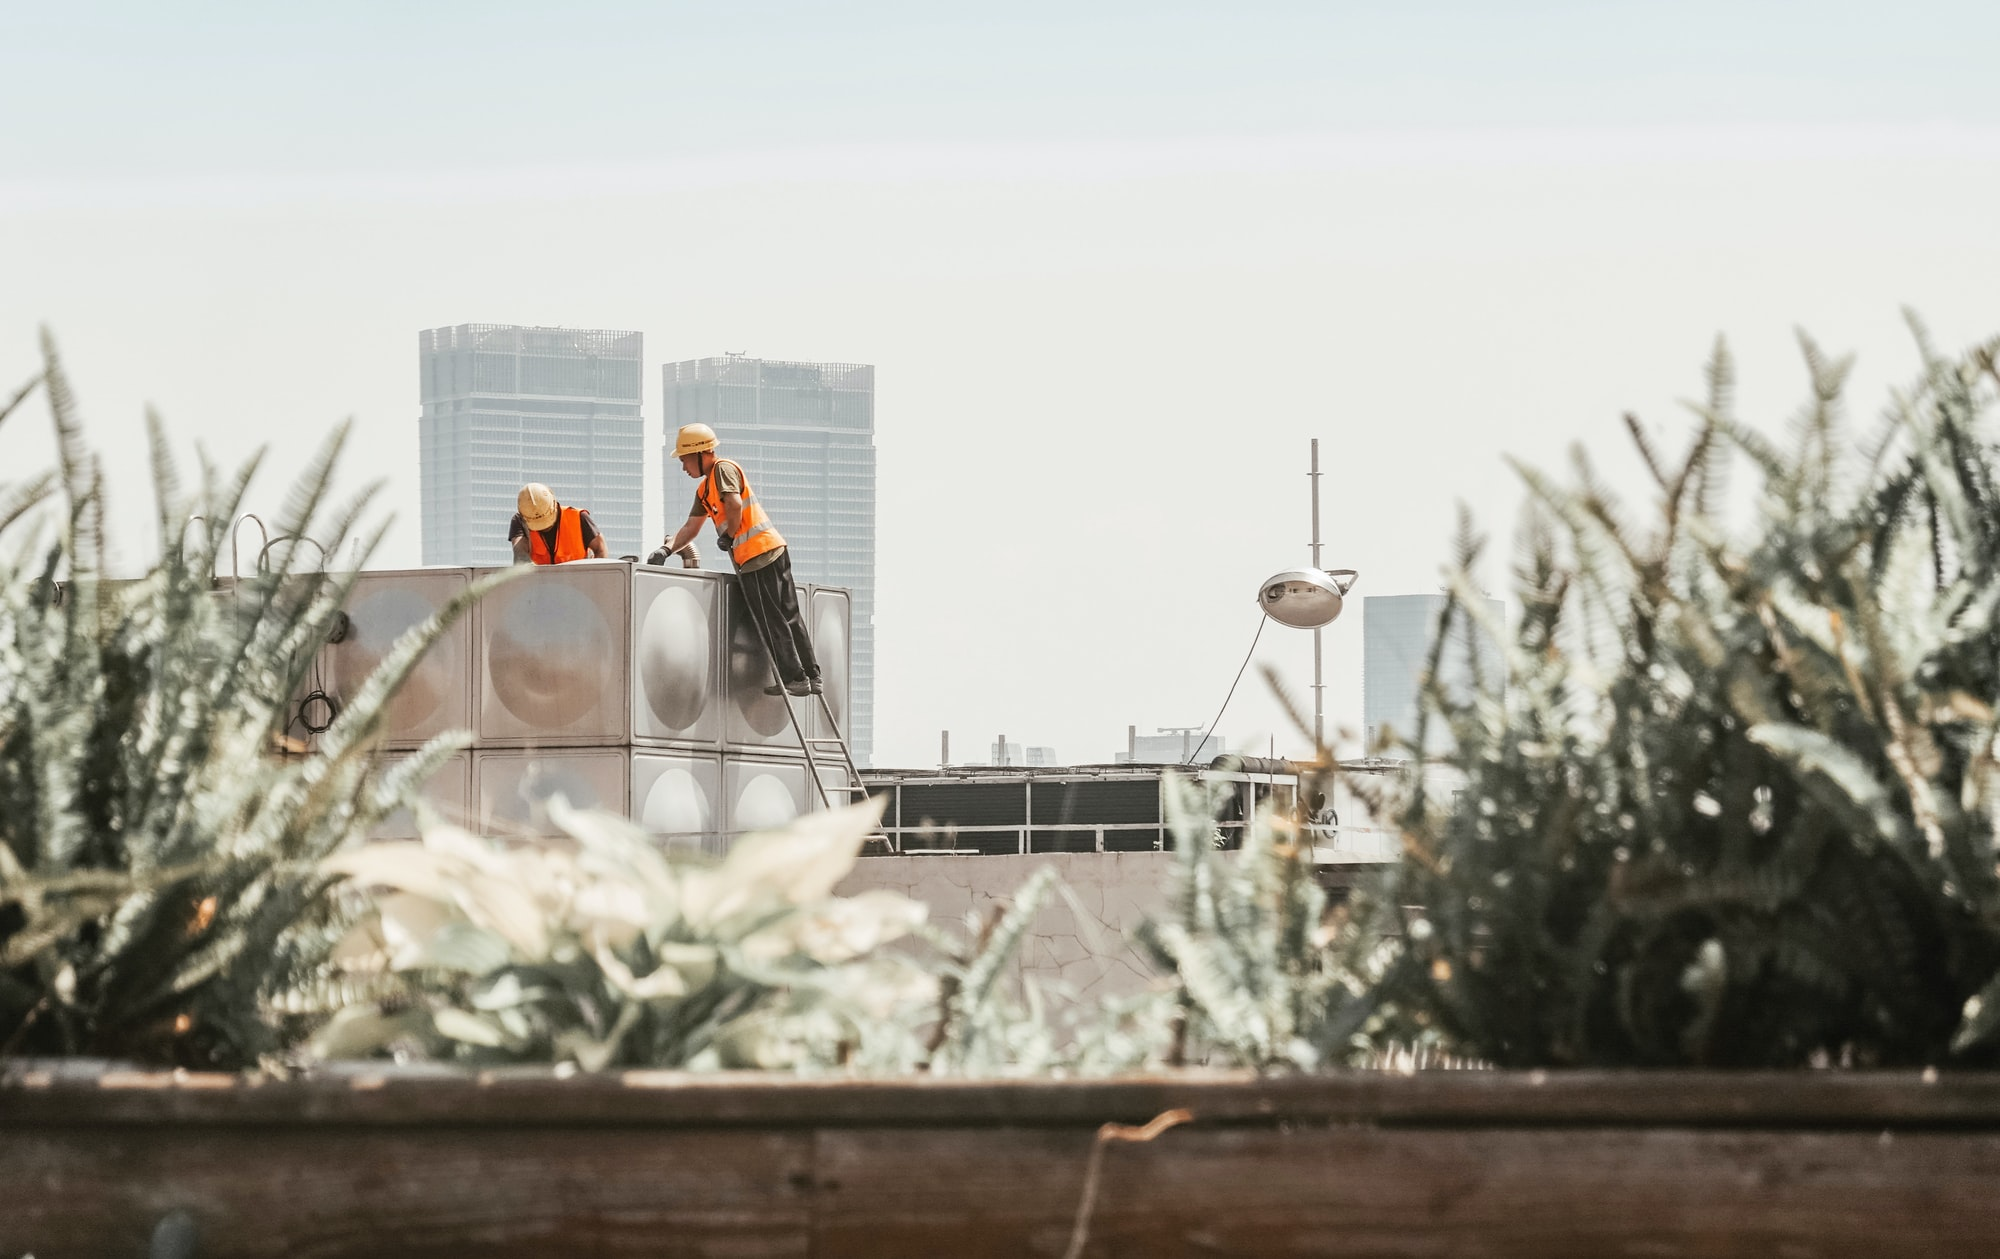 Construction workers on top of a building, with plants in the foreground